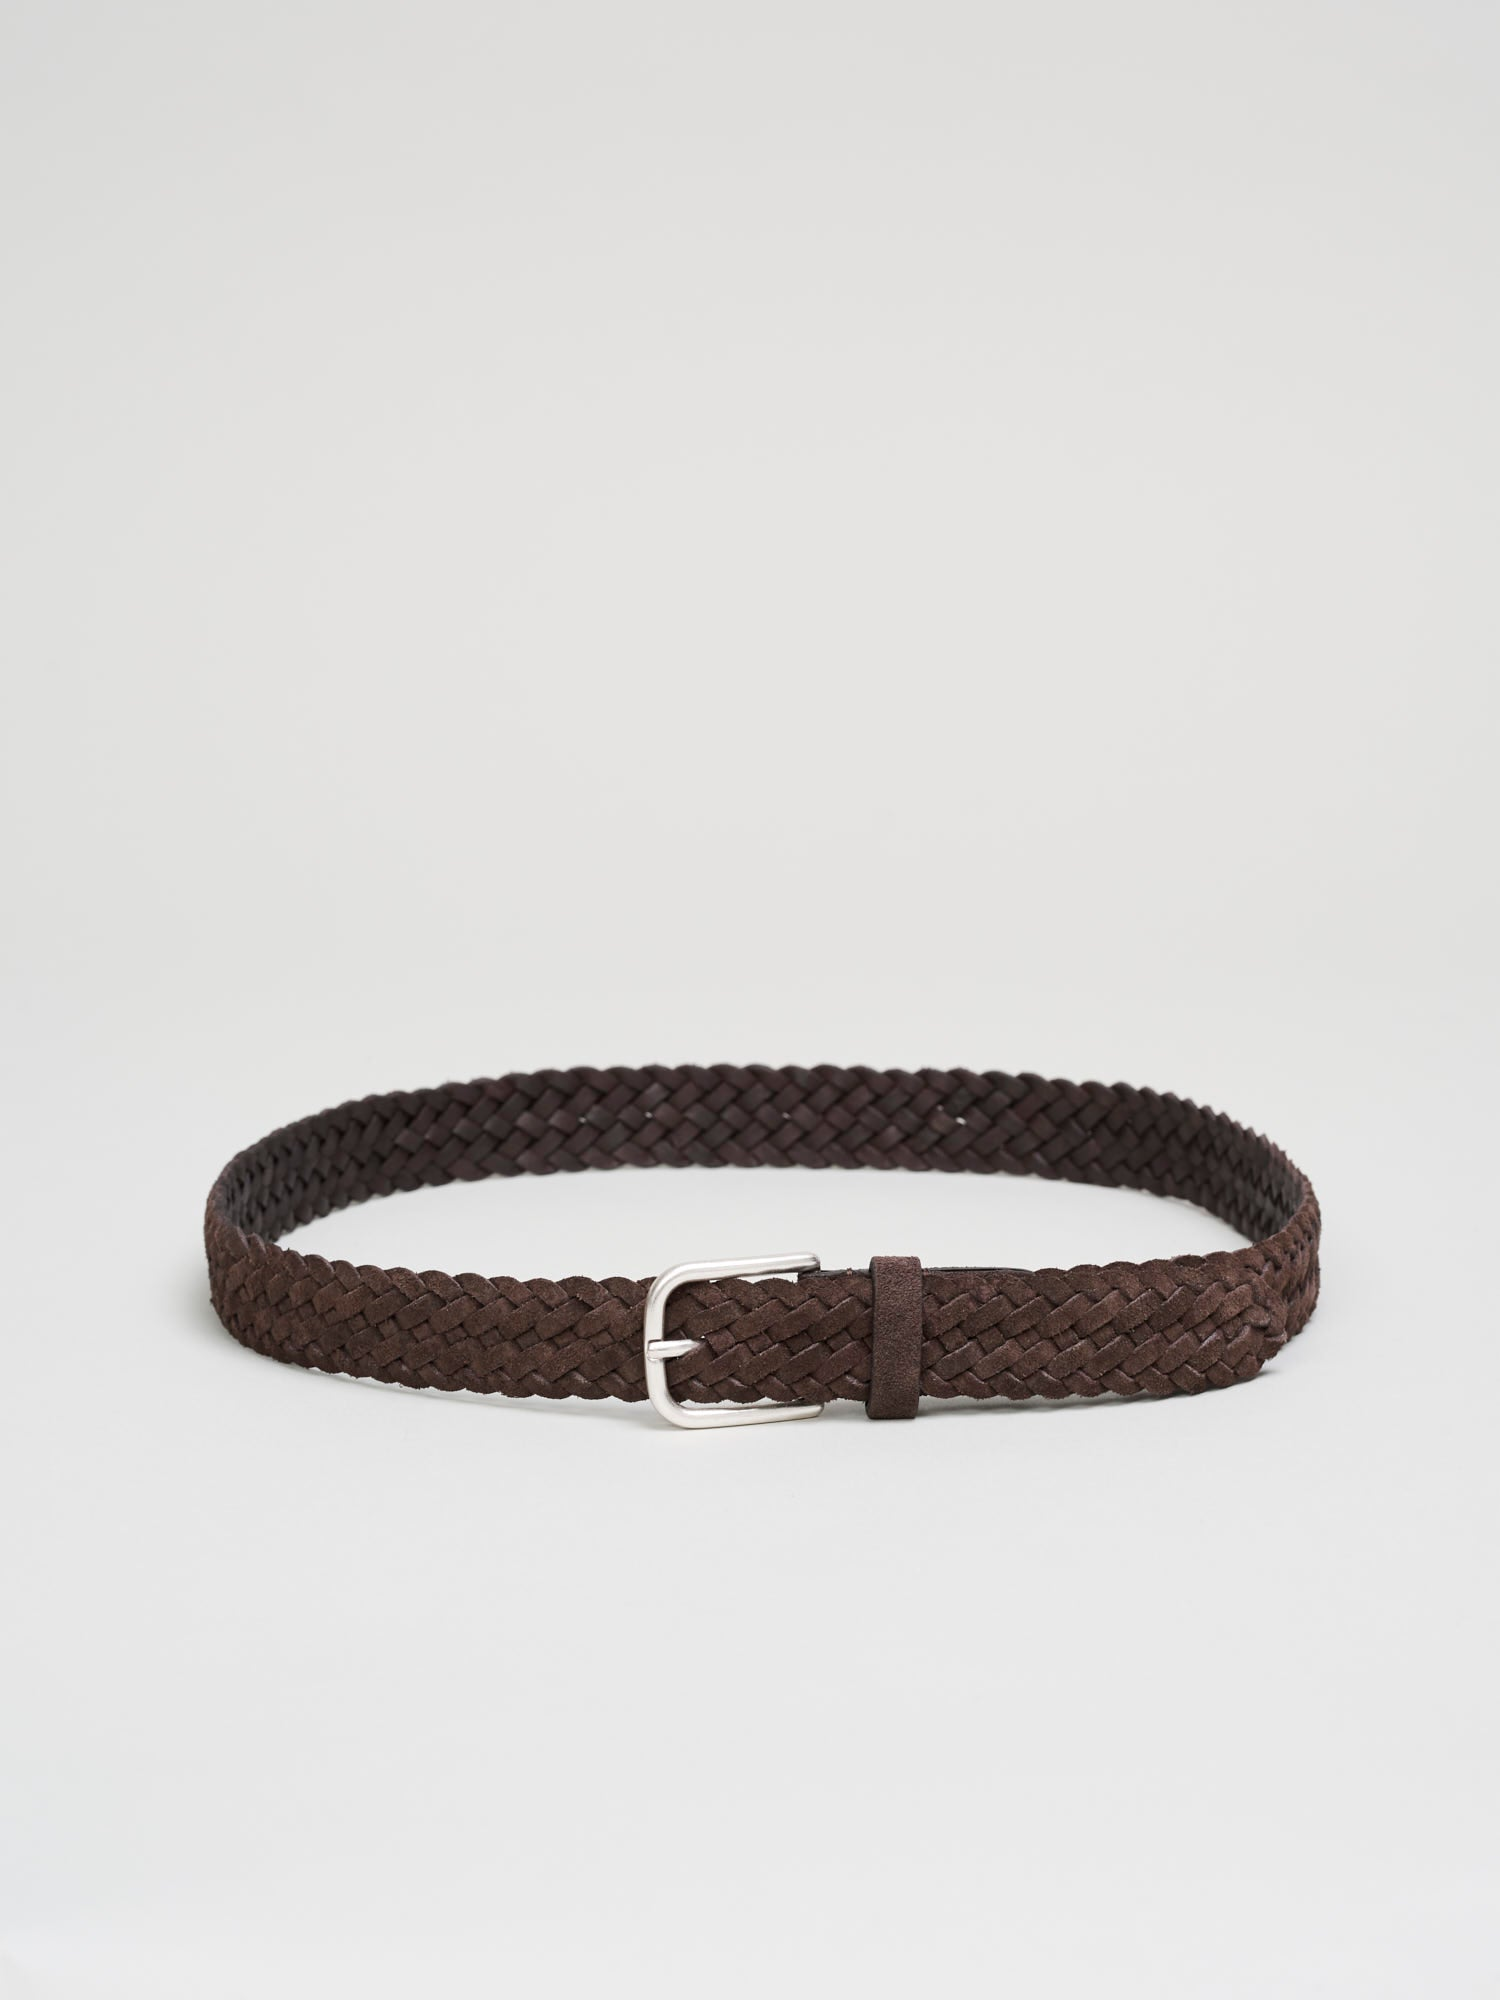 Braided Suede Belt, Dark Brown - Goods